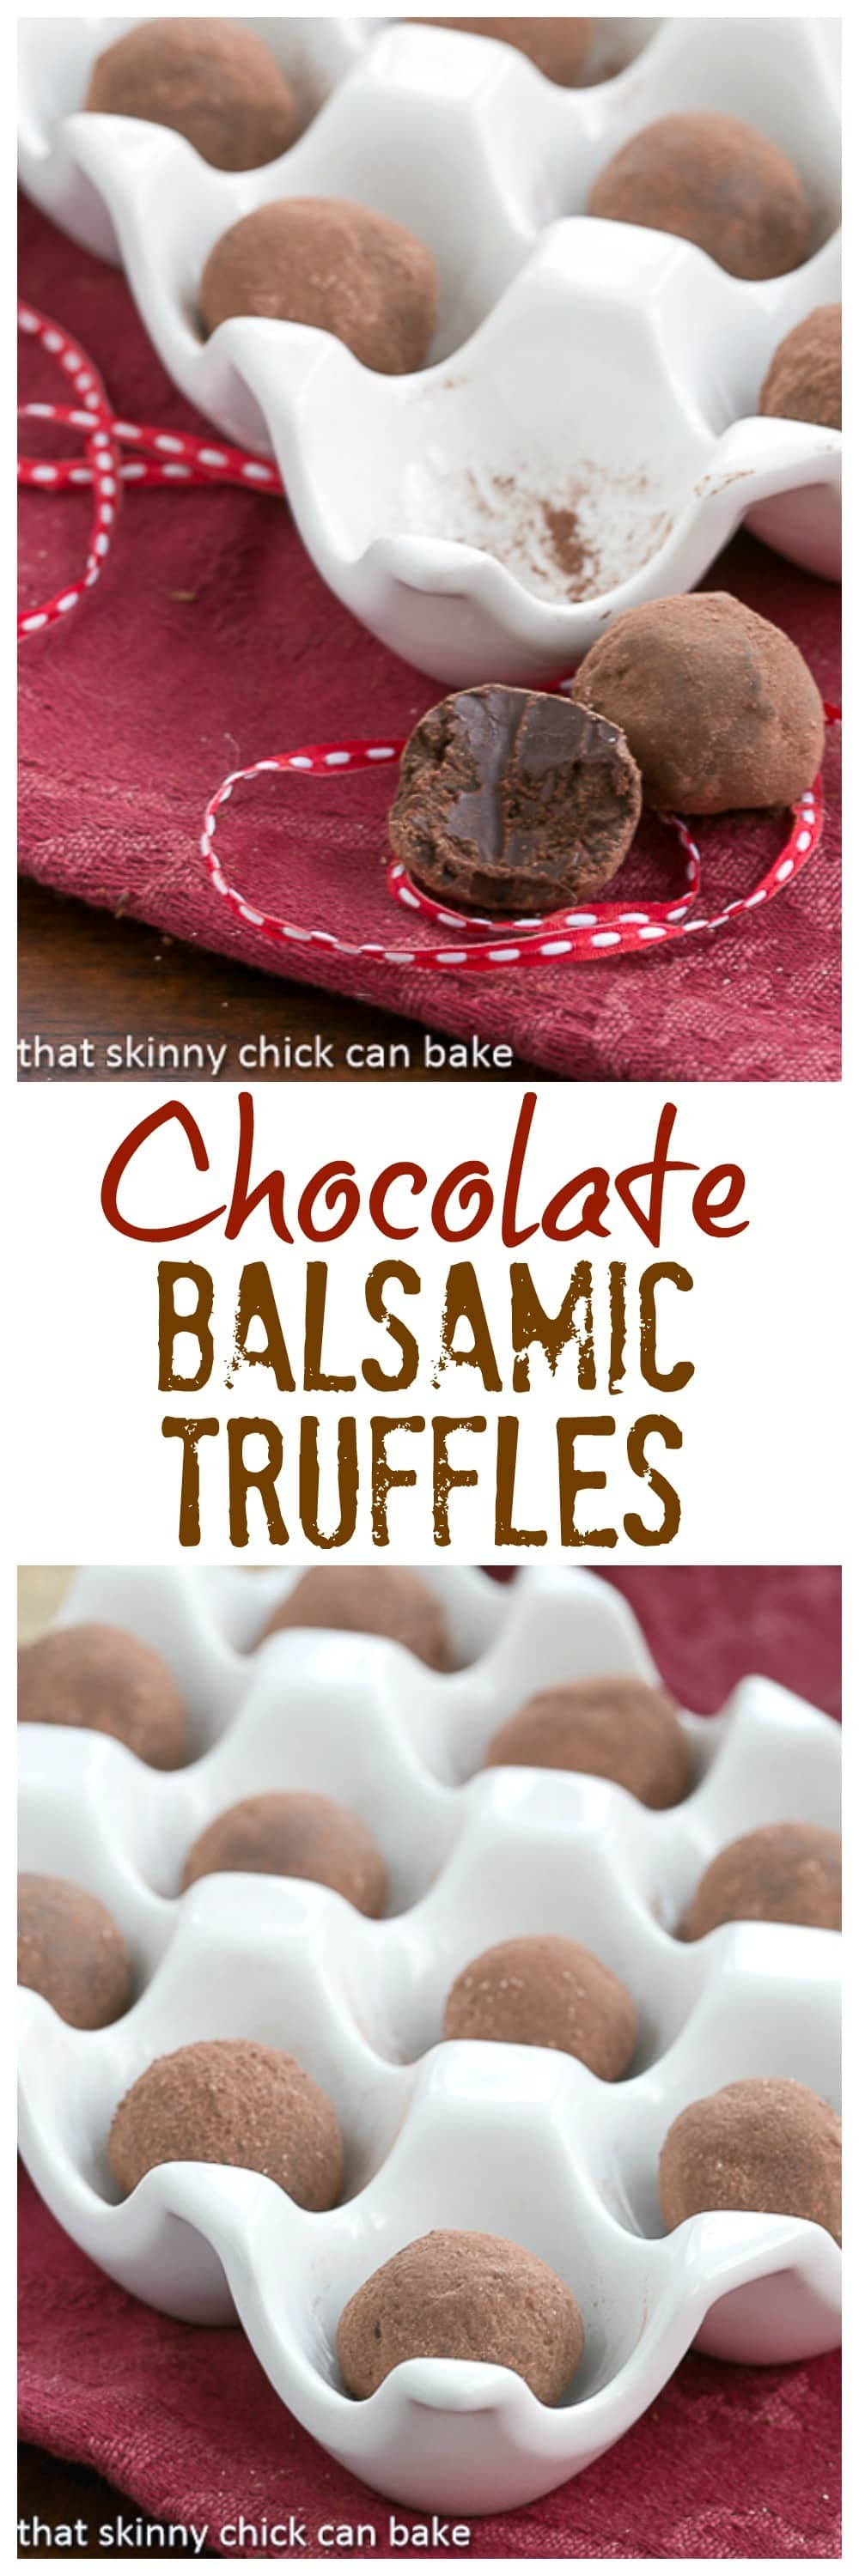 Chocolate Balsamic Truffles | Luscious chocolate candy with a certain je ne sais quoi